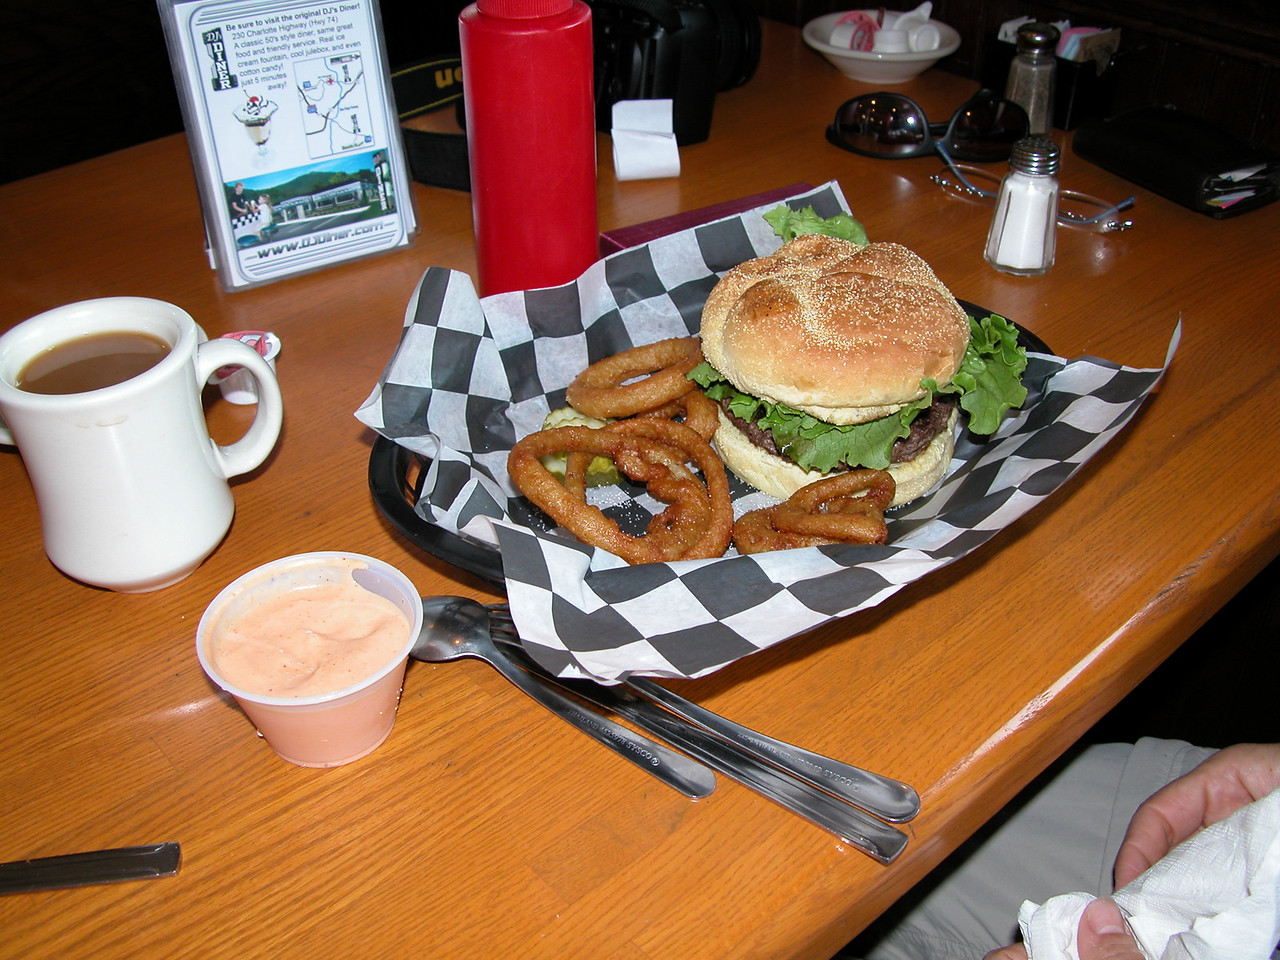 Helen's burger - also a treat after a long day with little to eat.  Beer battered onions rings and they were excellent!